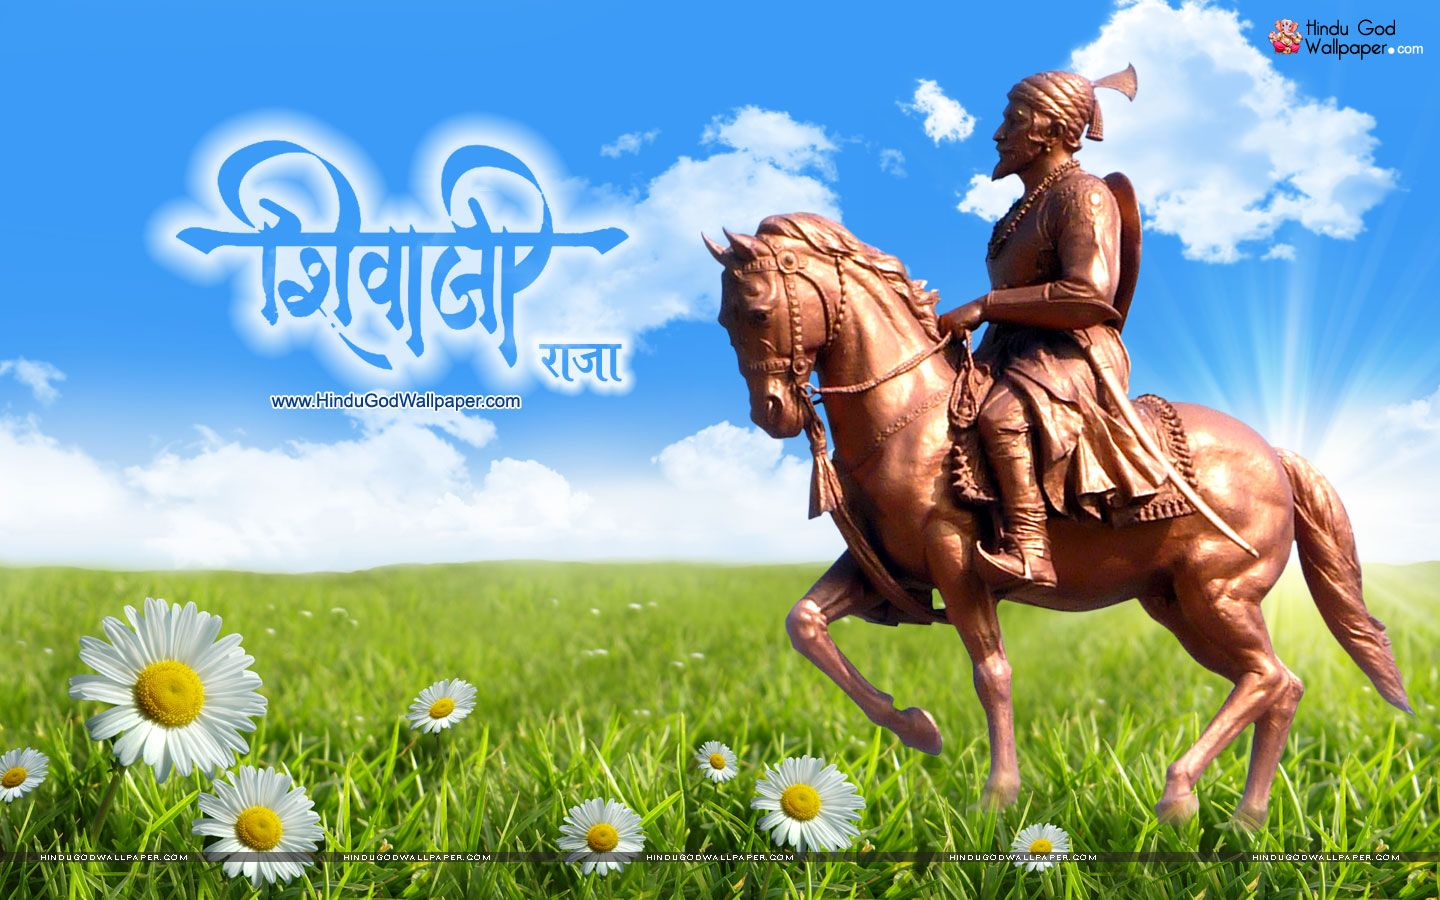 Hd wallpaper shivaji maharaj - Raje Shivaji Maharaj Hd Wallpaper Free Download